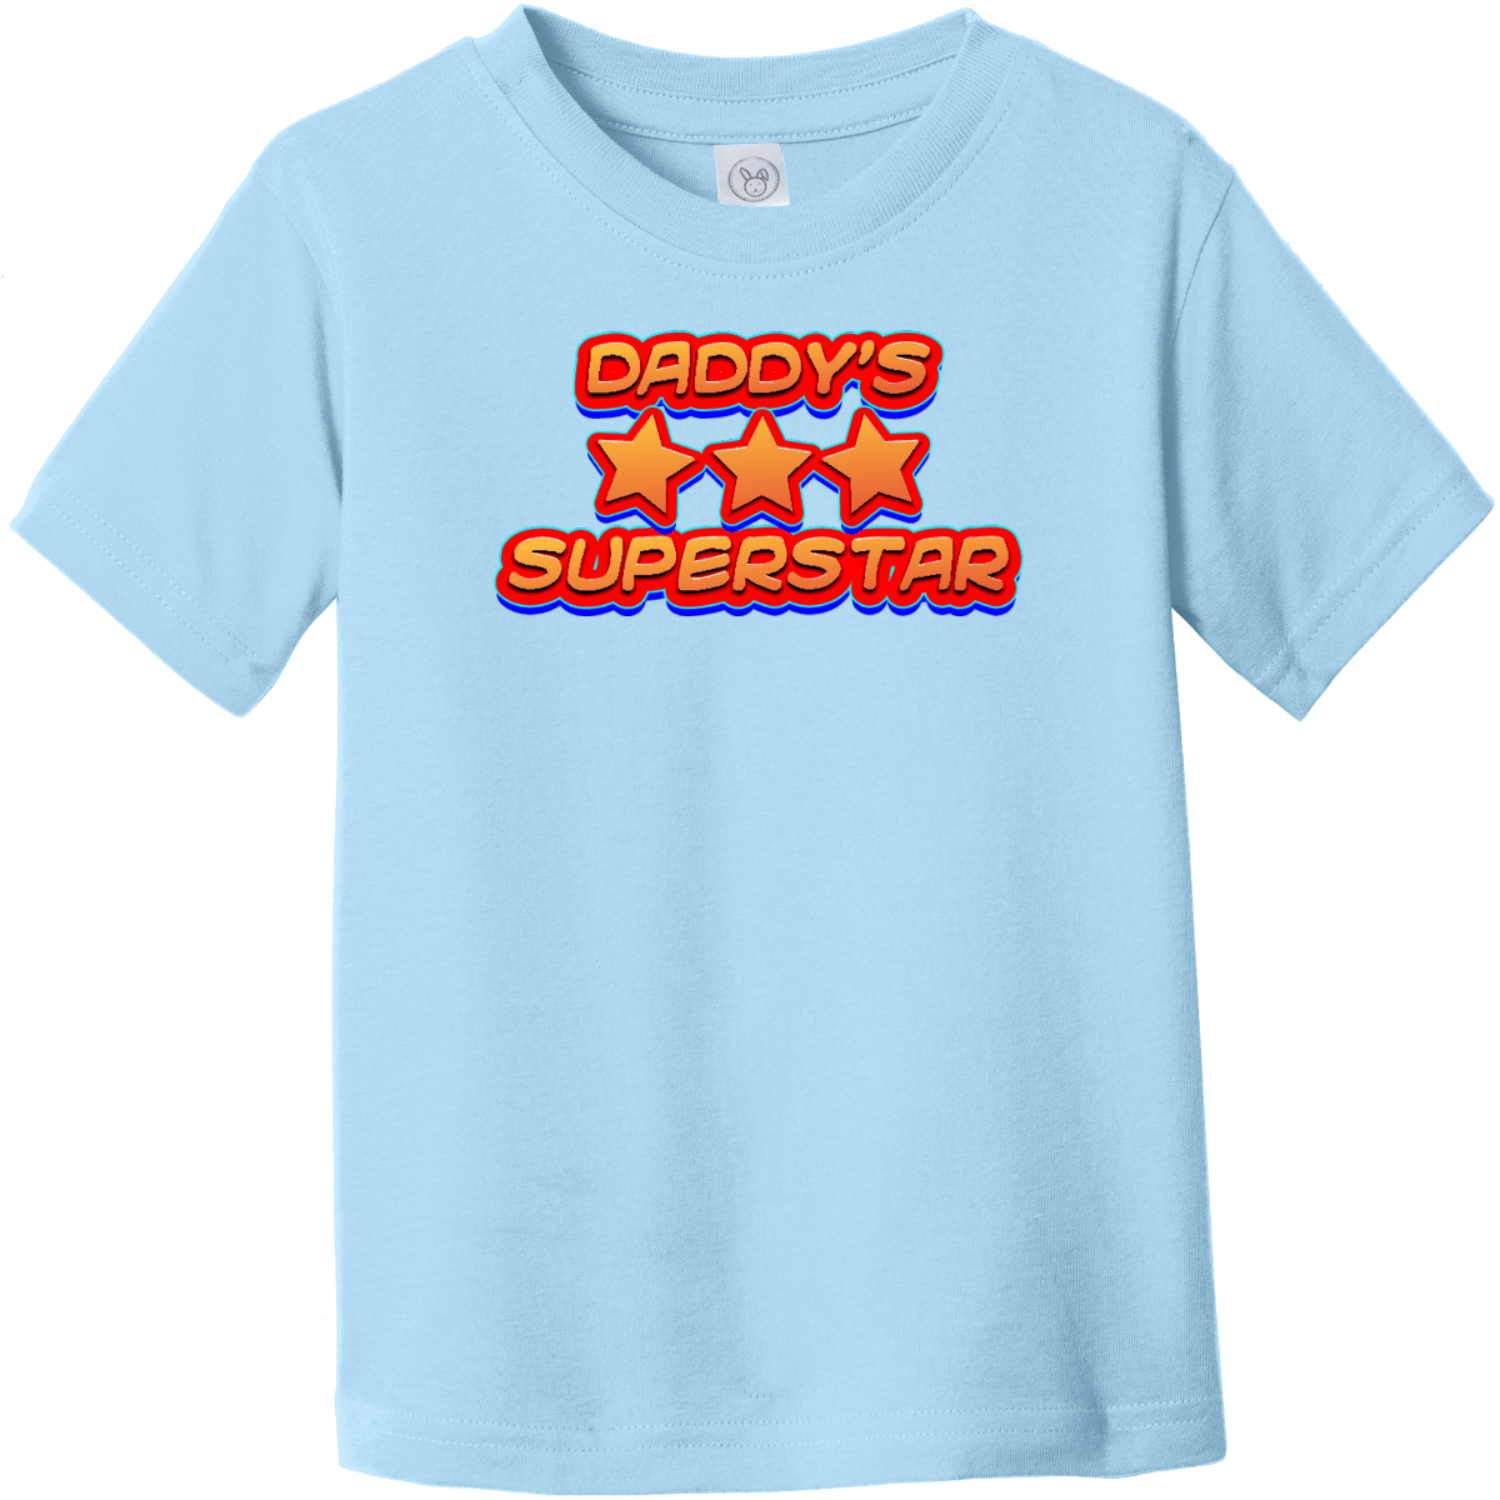 Daddy's Superstar Toddler T-Shirt Light Blue Rabbit Skins Toddler Fine Jersey Tee RS3321